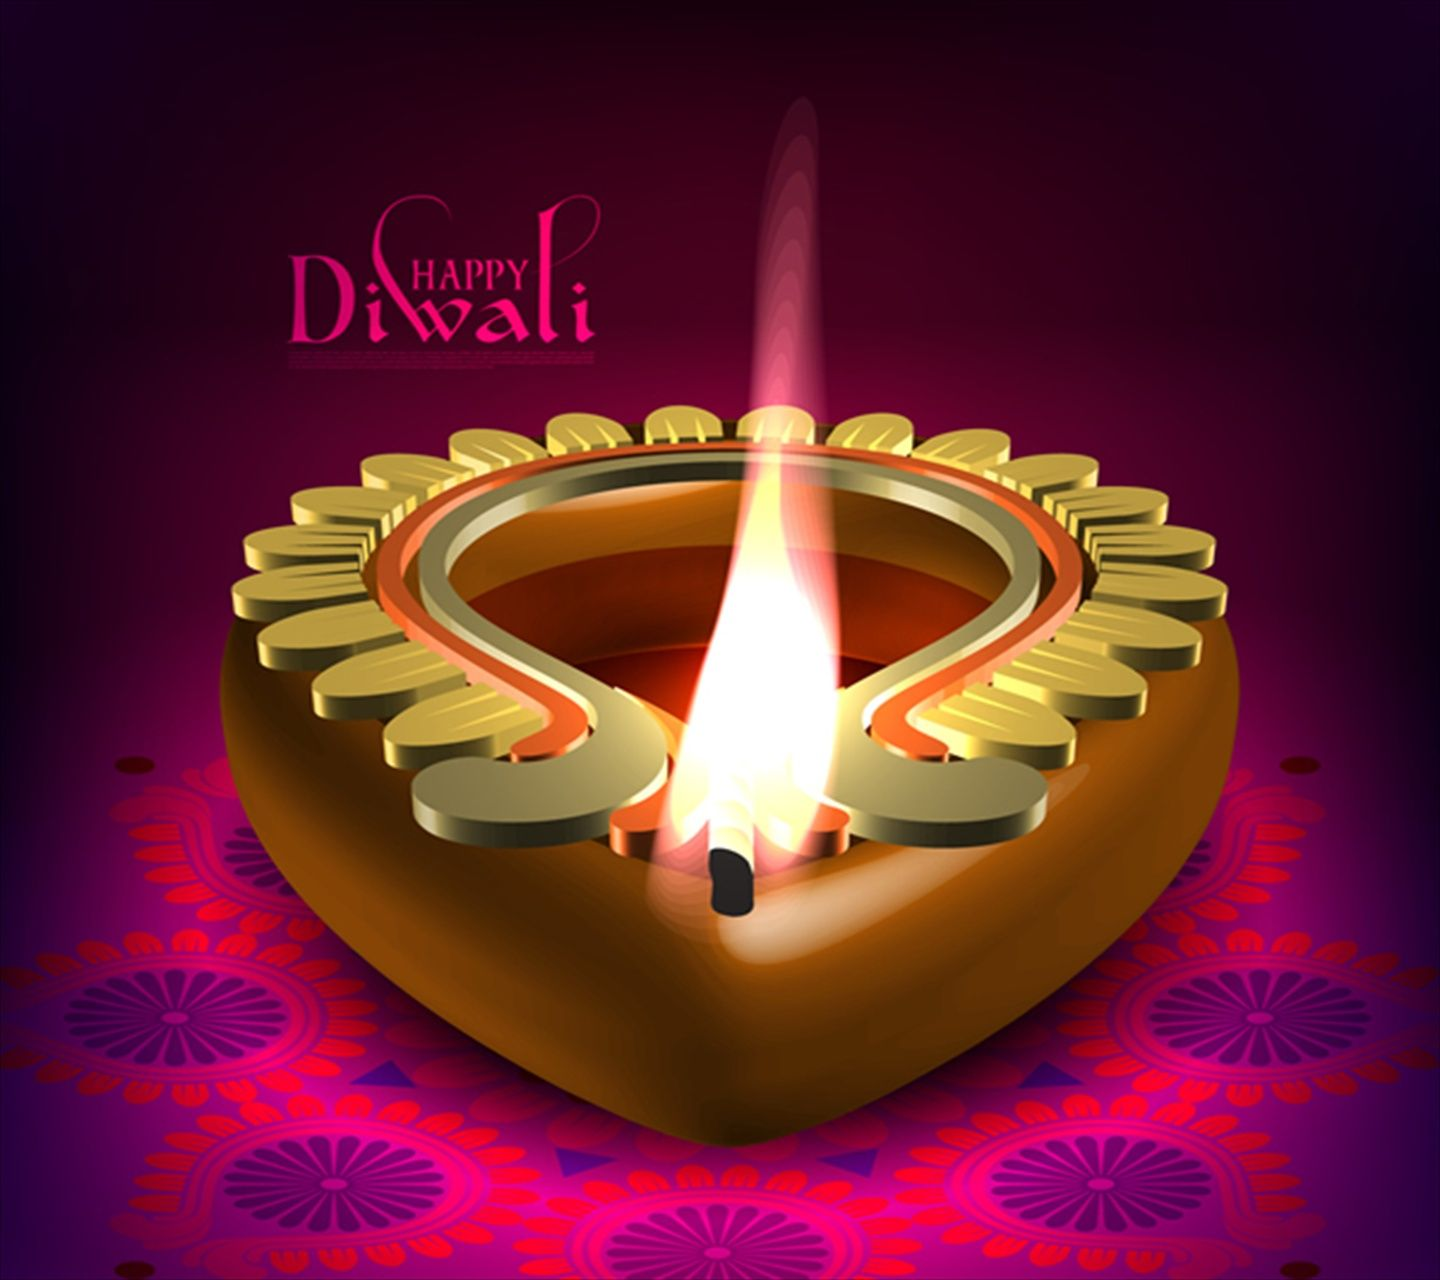 Happy Diwali Diya Hd Wallpaper Happy Diwali Images Diwali Wishes Happy Diwali